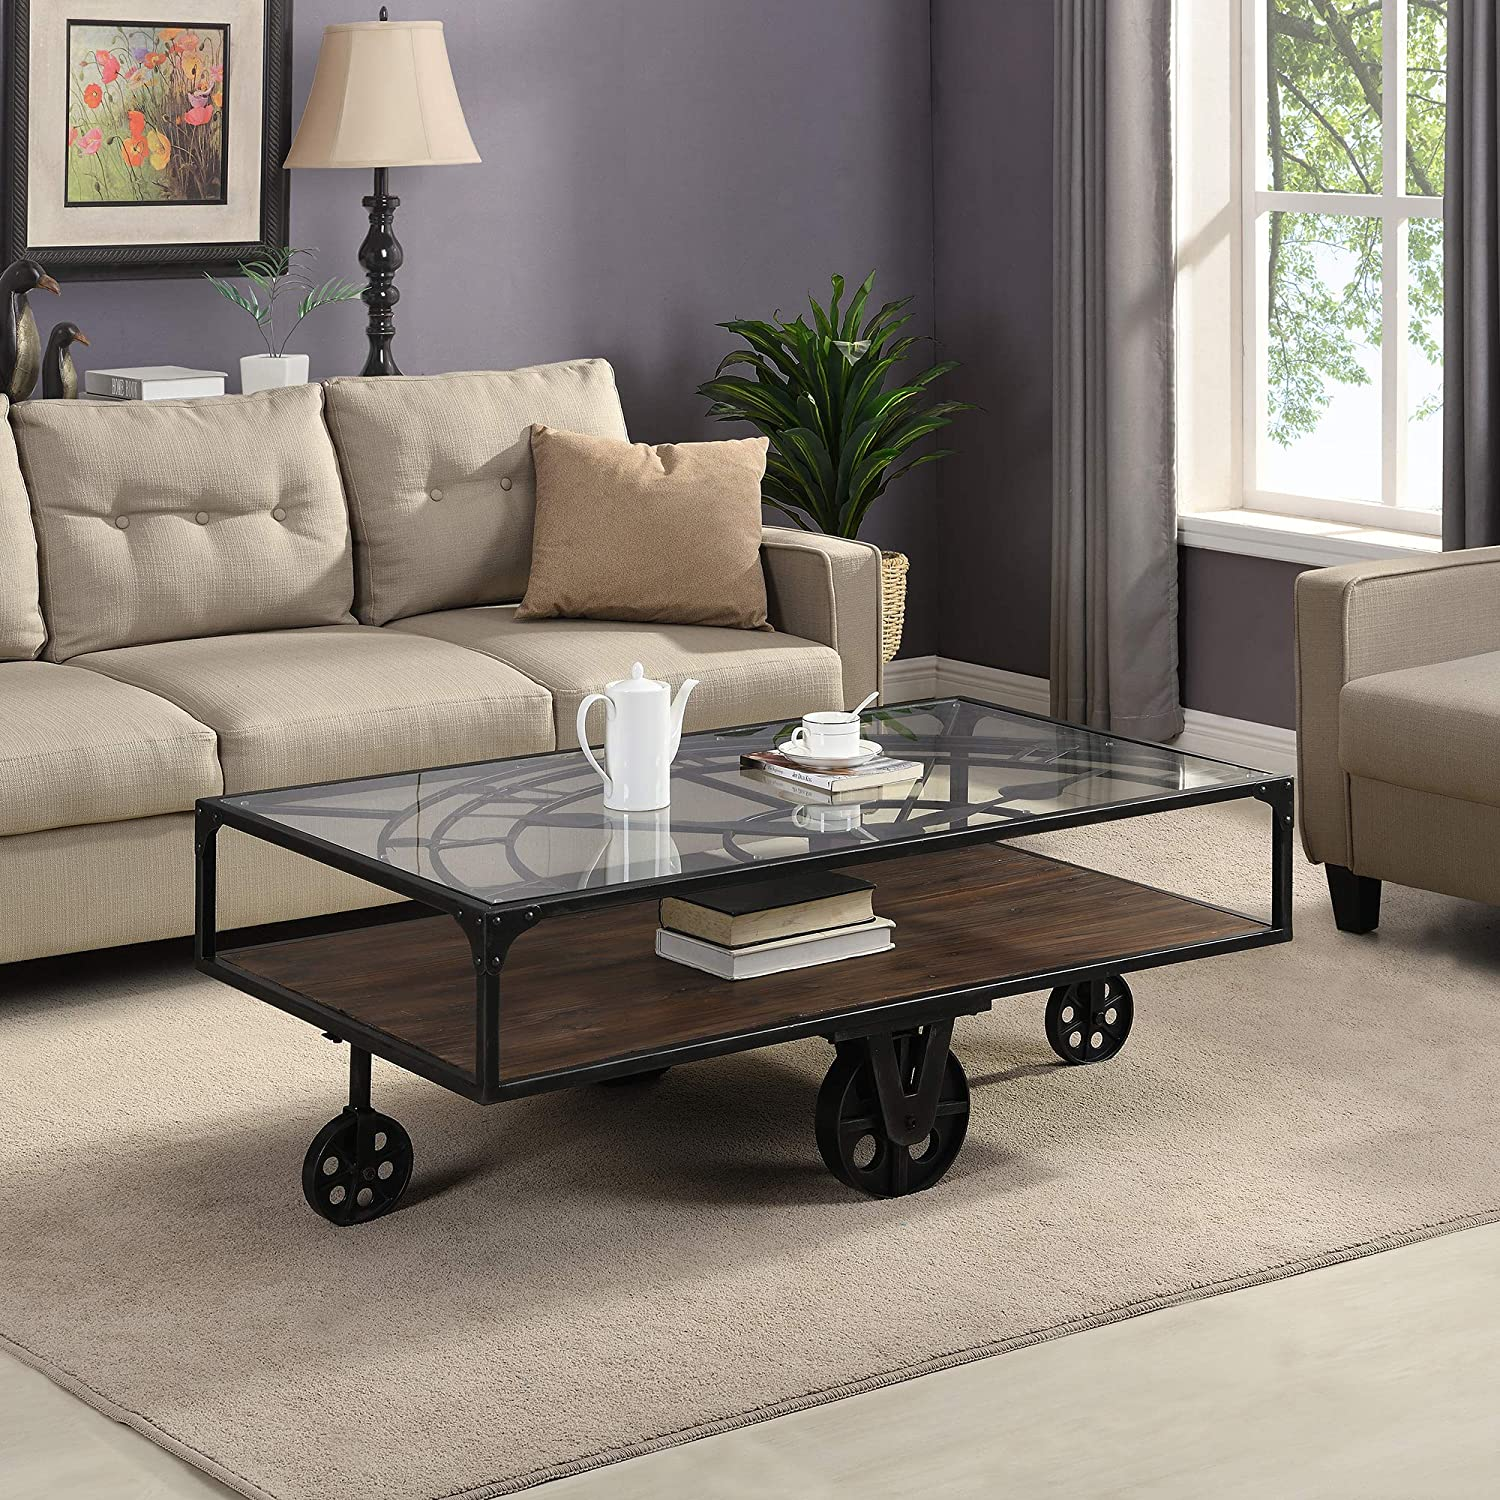 - Amazon.com: FirsTime & Co. Clock Tower Coffee Table, American